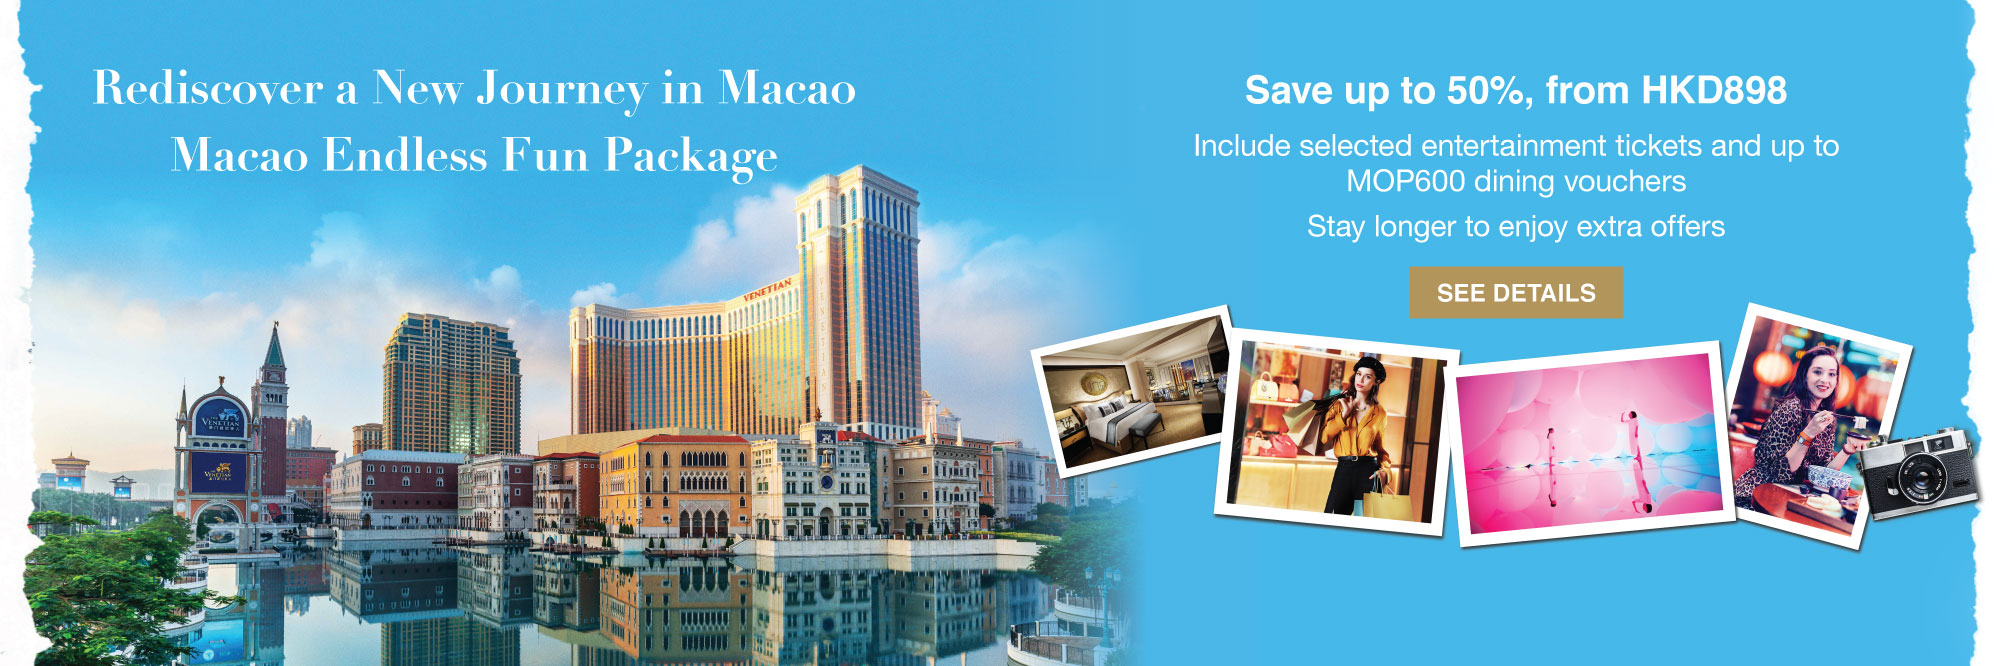 https://assets.sandsresortsmacao.cn/content/sandsresortsmacao/macau-offers/staycation-macao-package/srm-staycation-macao-package_cta-banner_2000x666_en.jpg--------https://en.sandsresortsmacao.com/macau-offers/staycation-macao-package.html